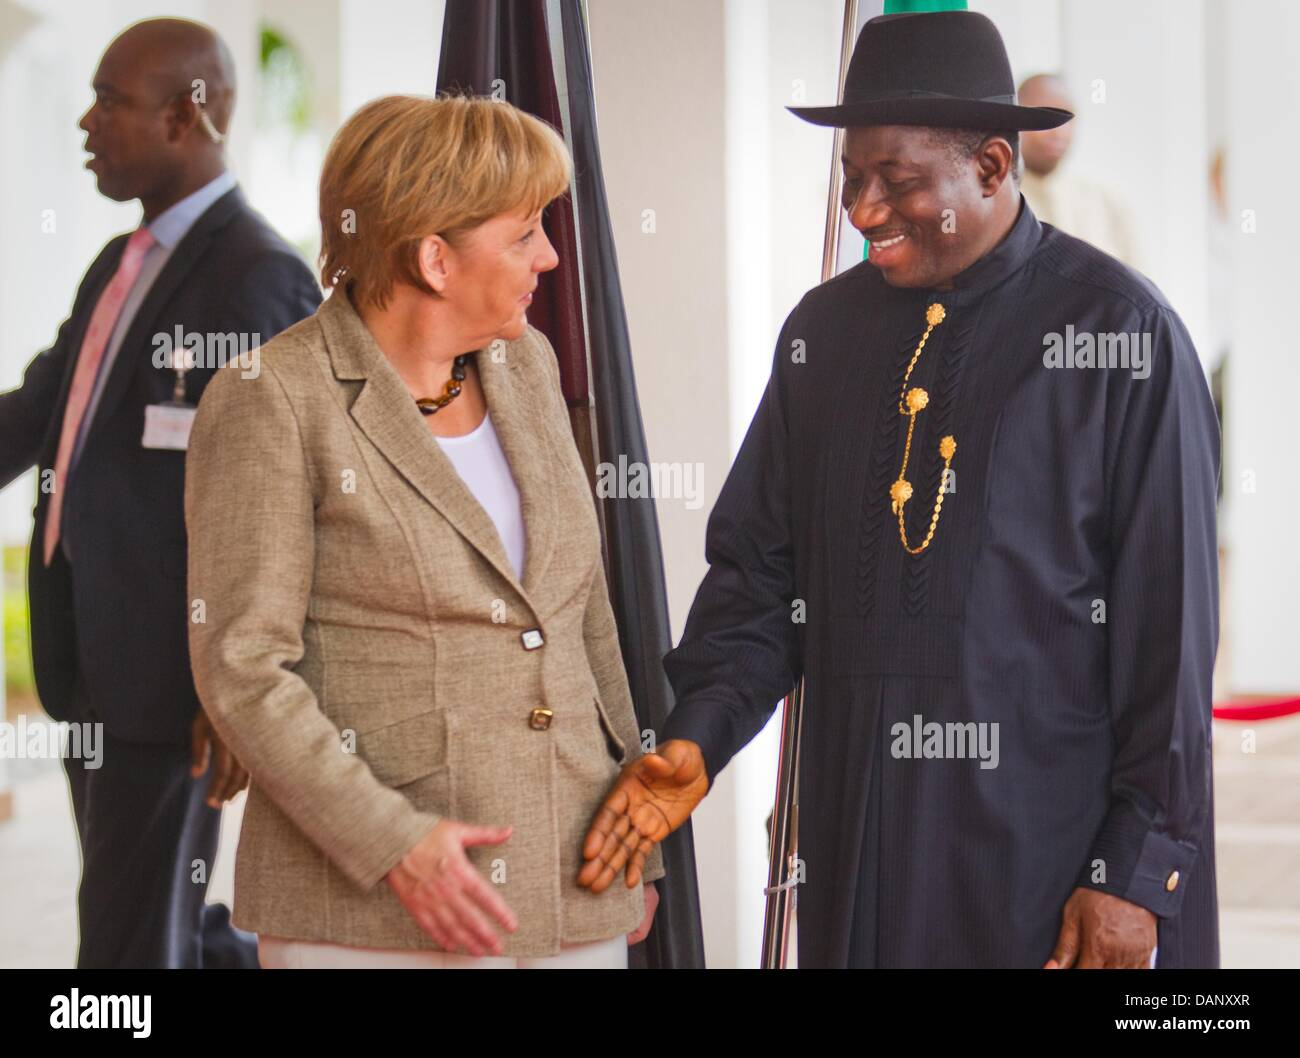 Angela Merkel visit German Chancellor Angela Merkel is greeted by President of Nigeria Goodluck  Jonathan in Abuja, Nigeria